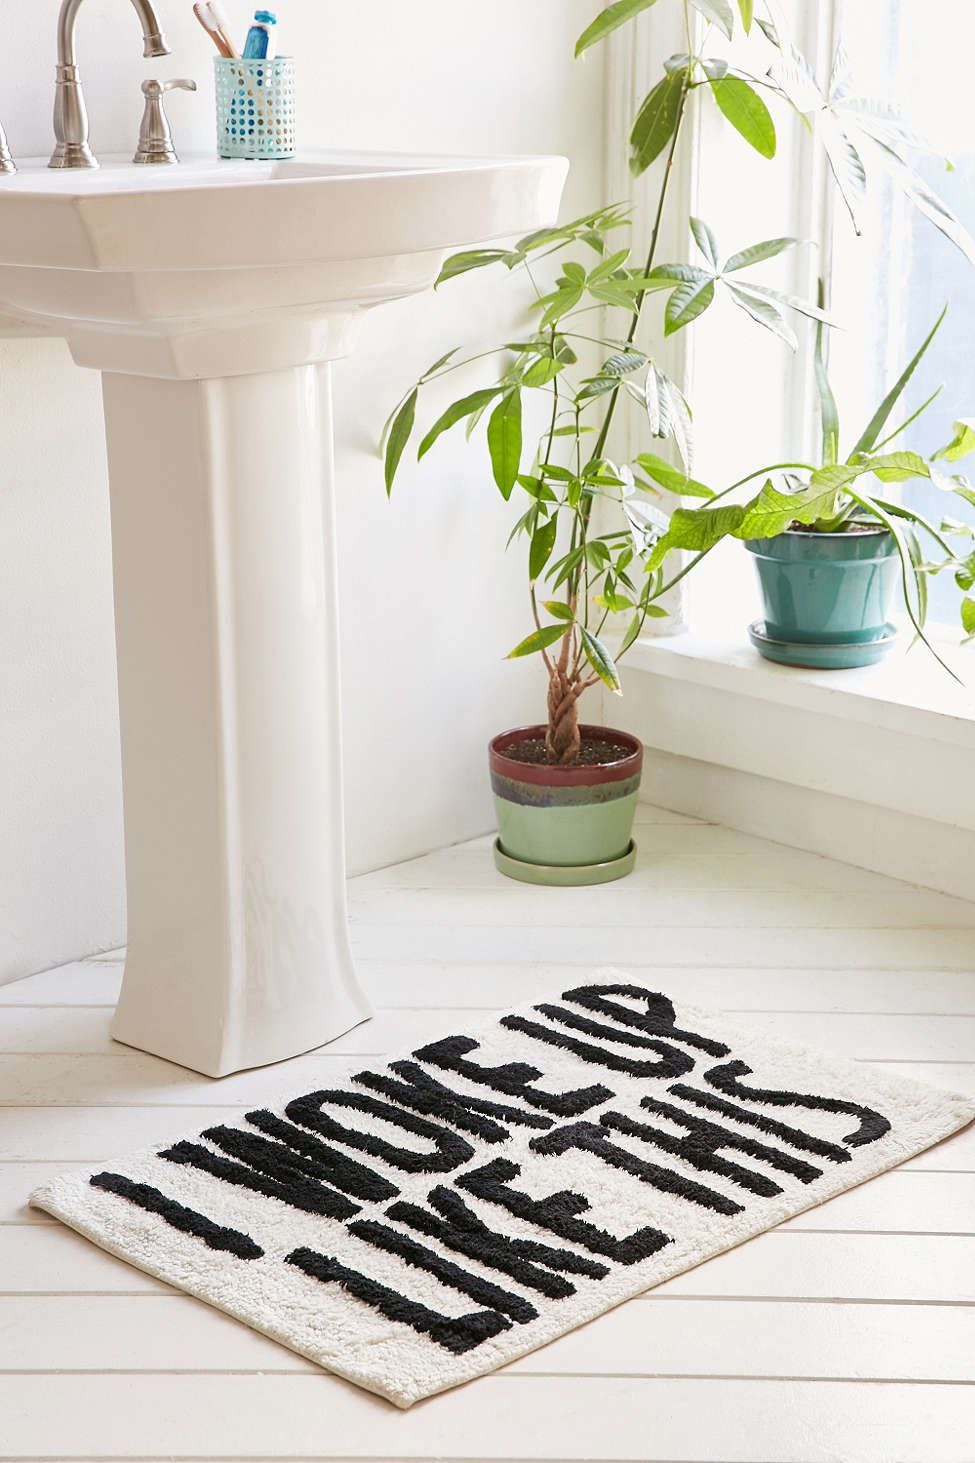 I Woke Up Like This Bath Mat Bath Mats Bath Mat And Urban - Rugs and mats for bathroom decorating ideas